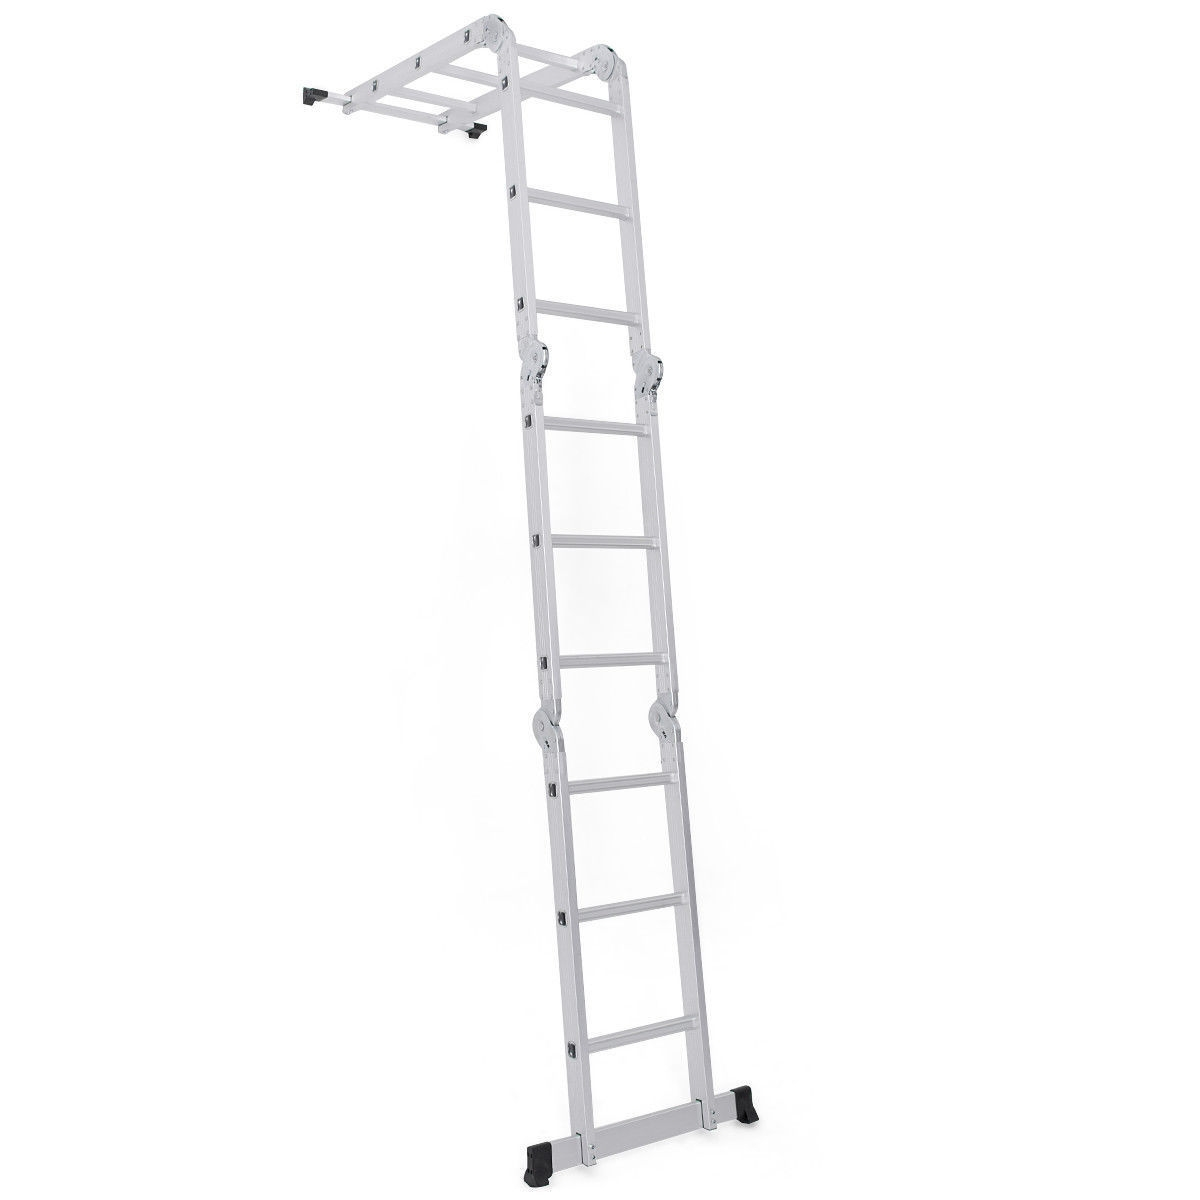 12.5FT EN131 Multi Purpose Step Aluminum Folding Scaffold Ladder